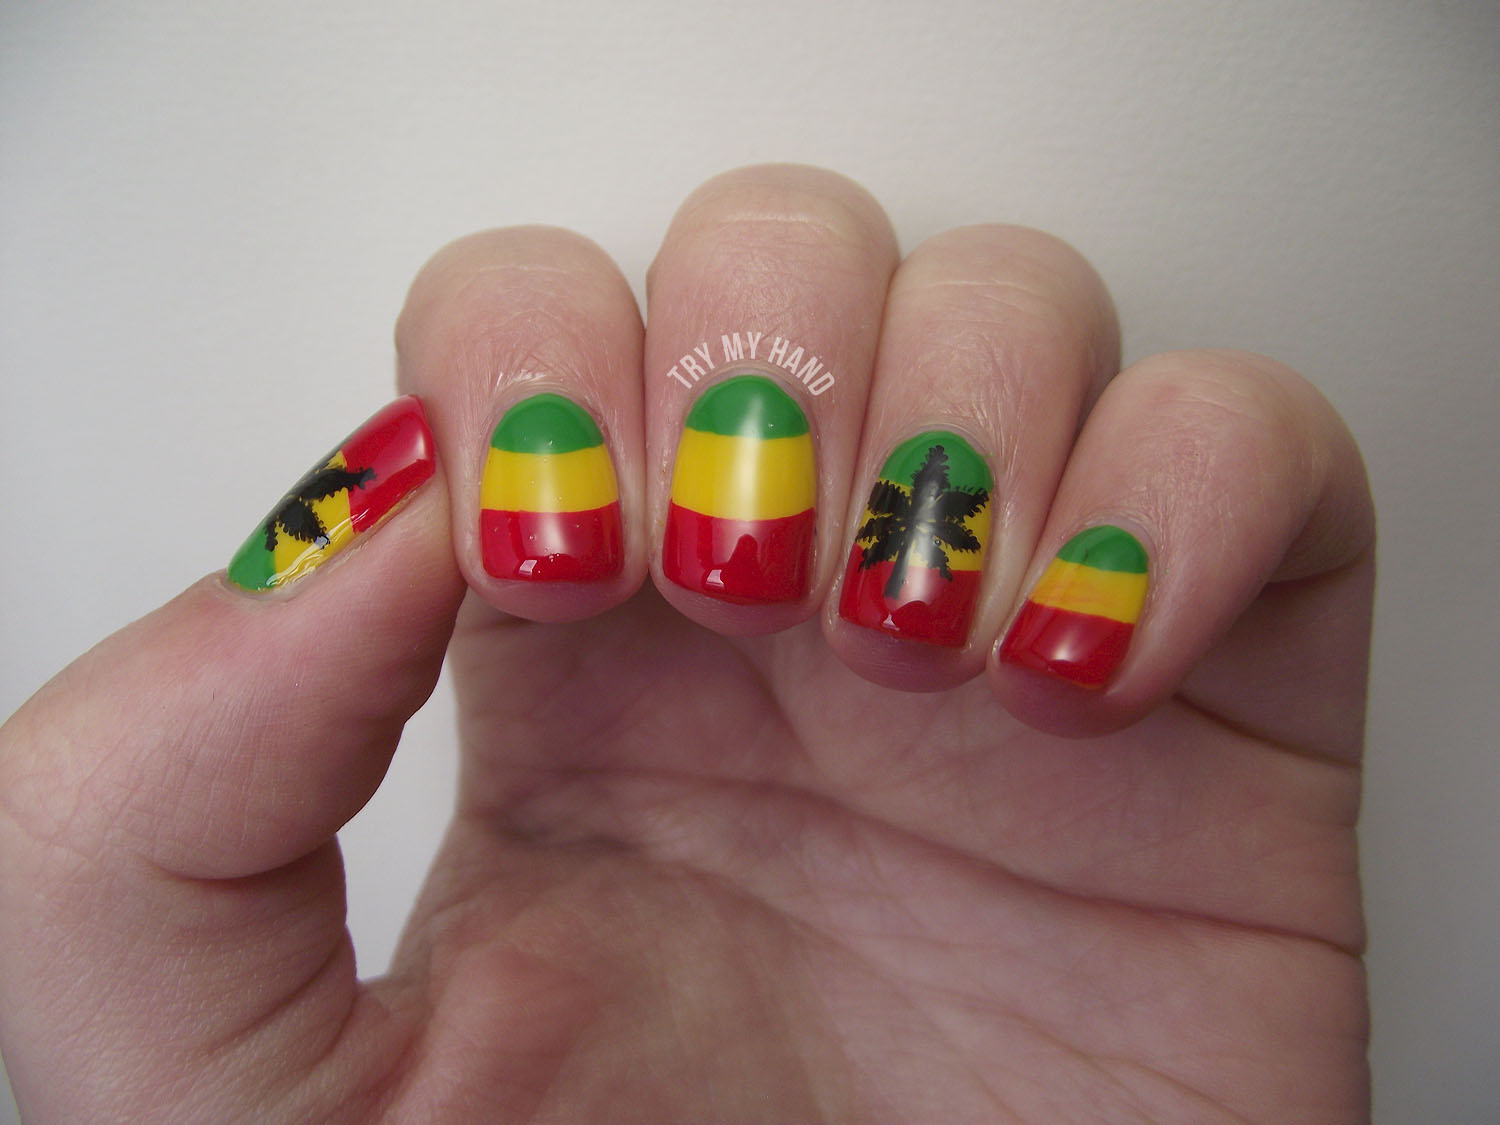 Try My Hand Alphabet Nail Art Challenge R For Rasta